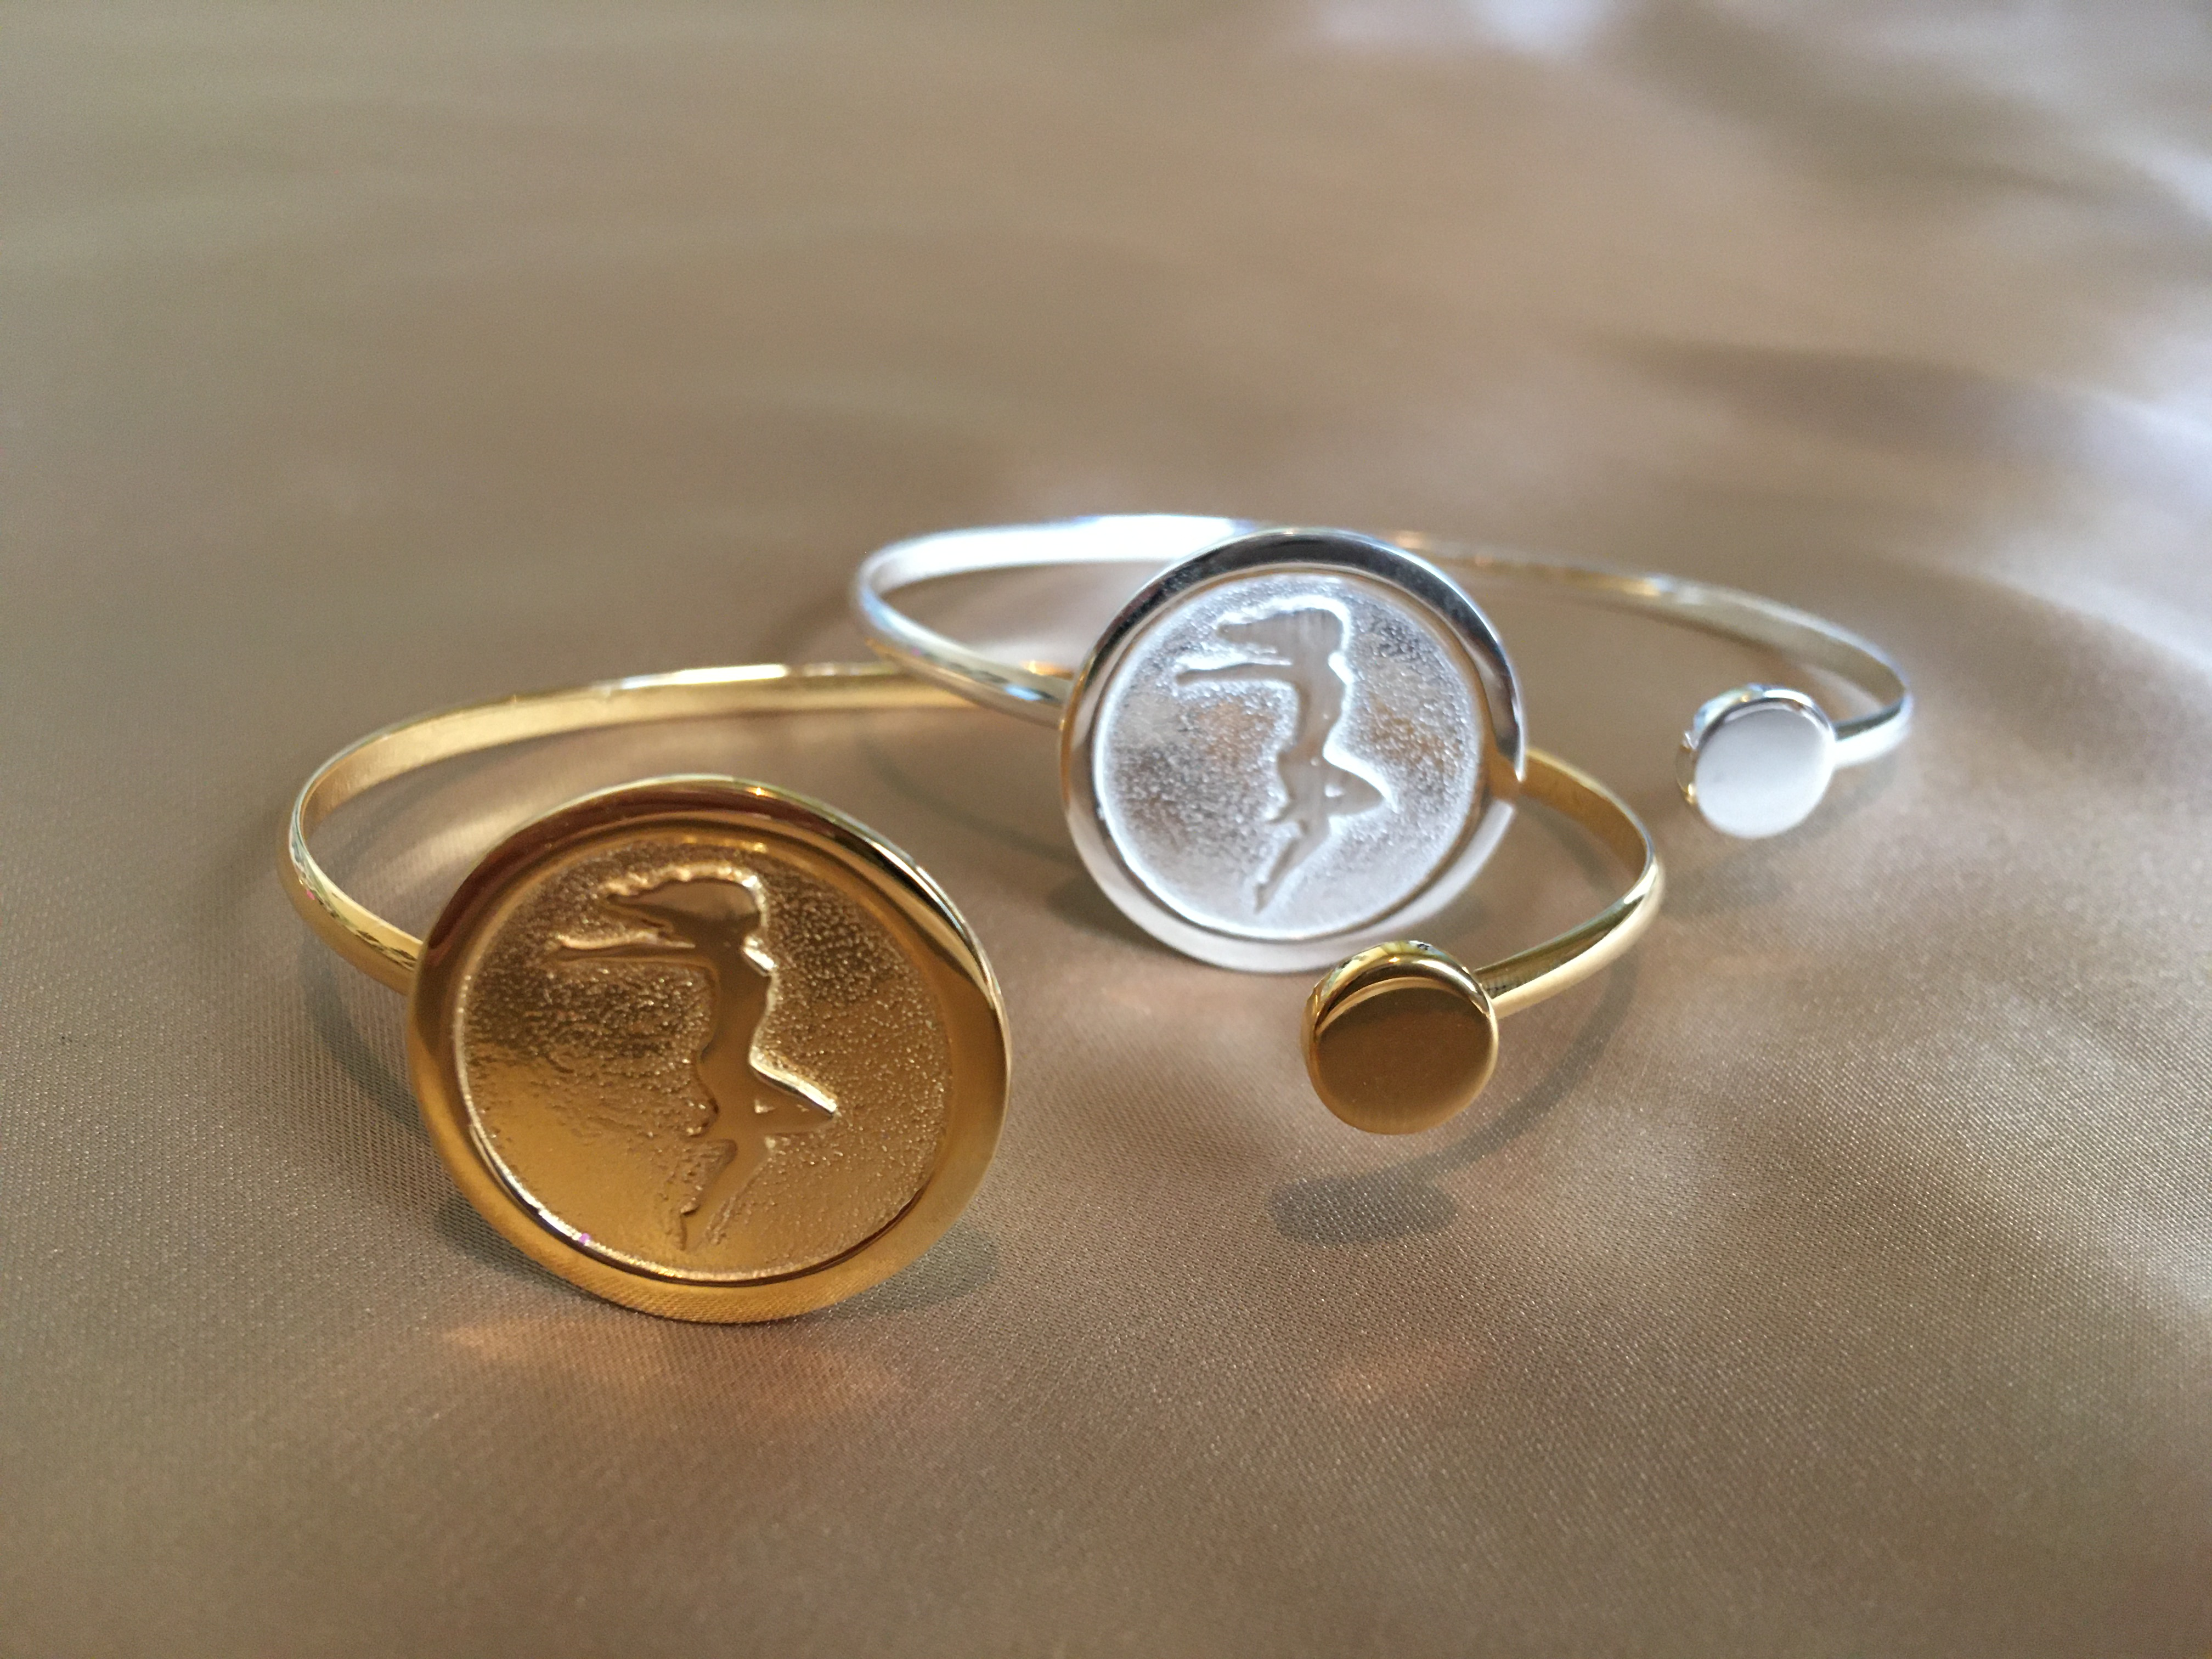 The Concept Jewelry